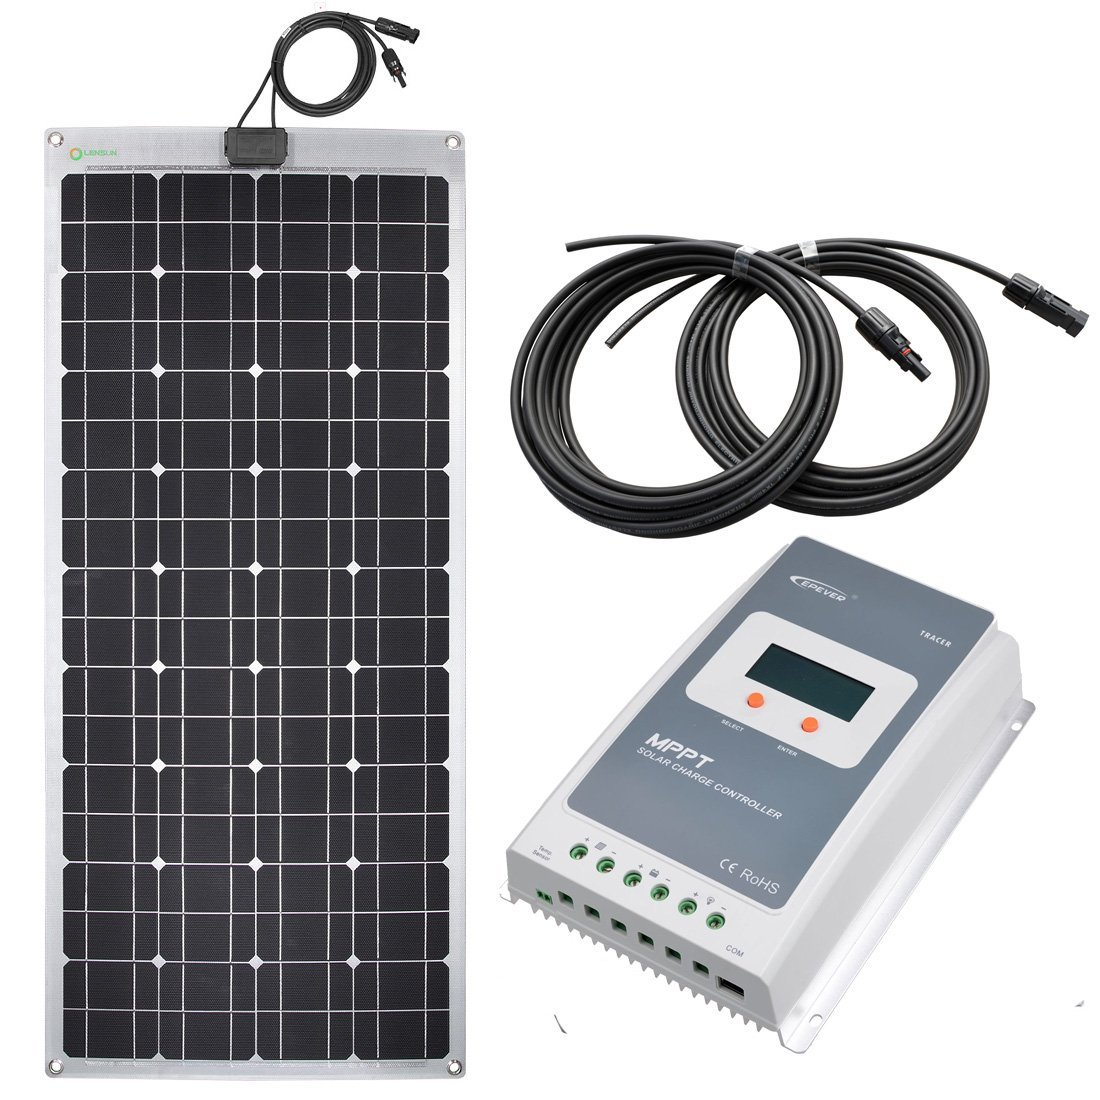 Lensun 200w 12v Flexible Rv Solar Panel Kit With 20 Amp